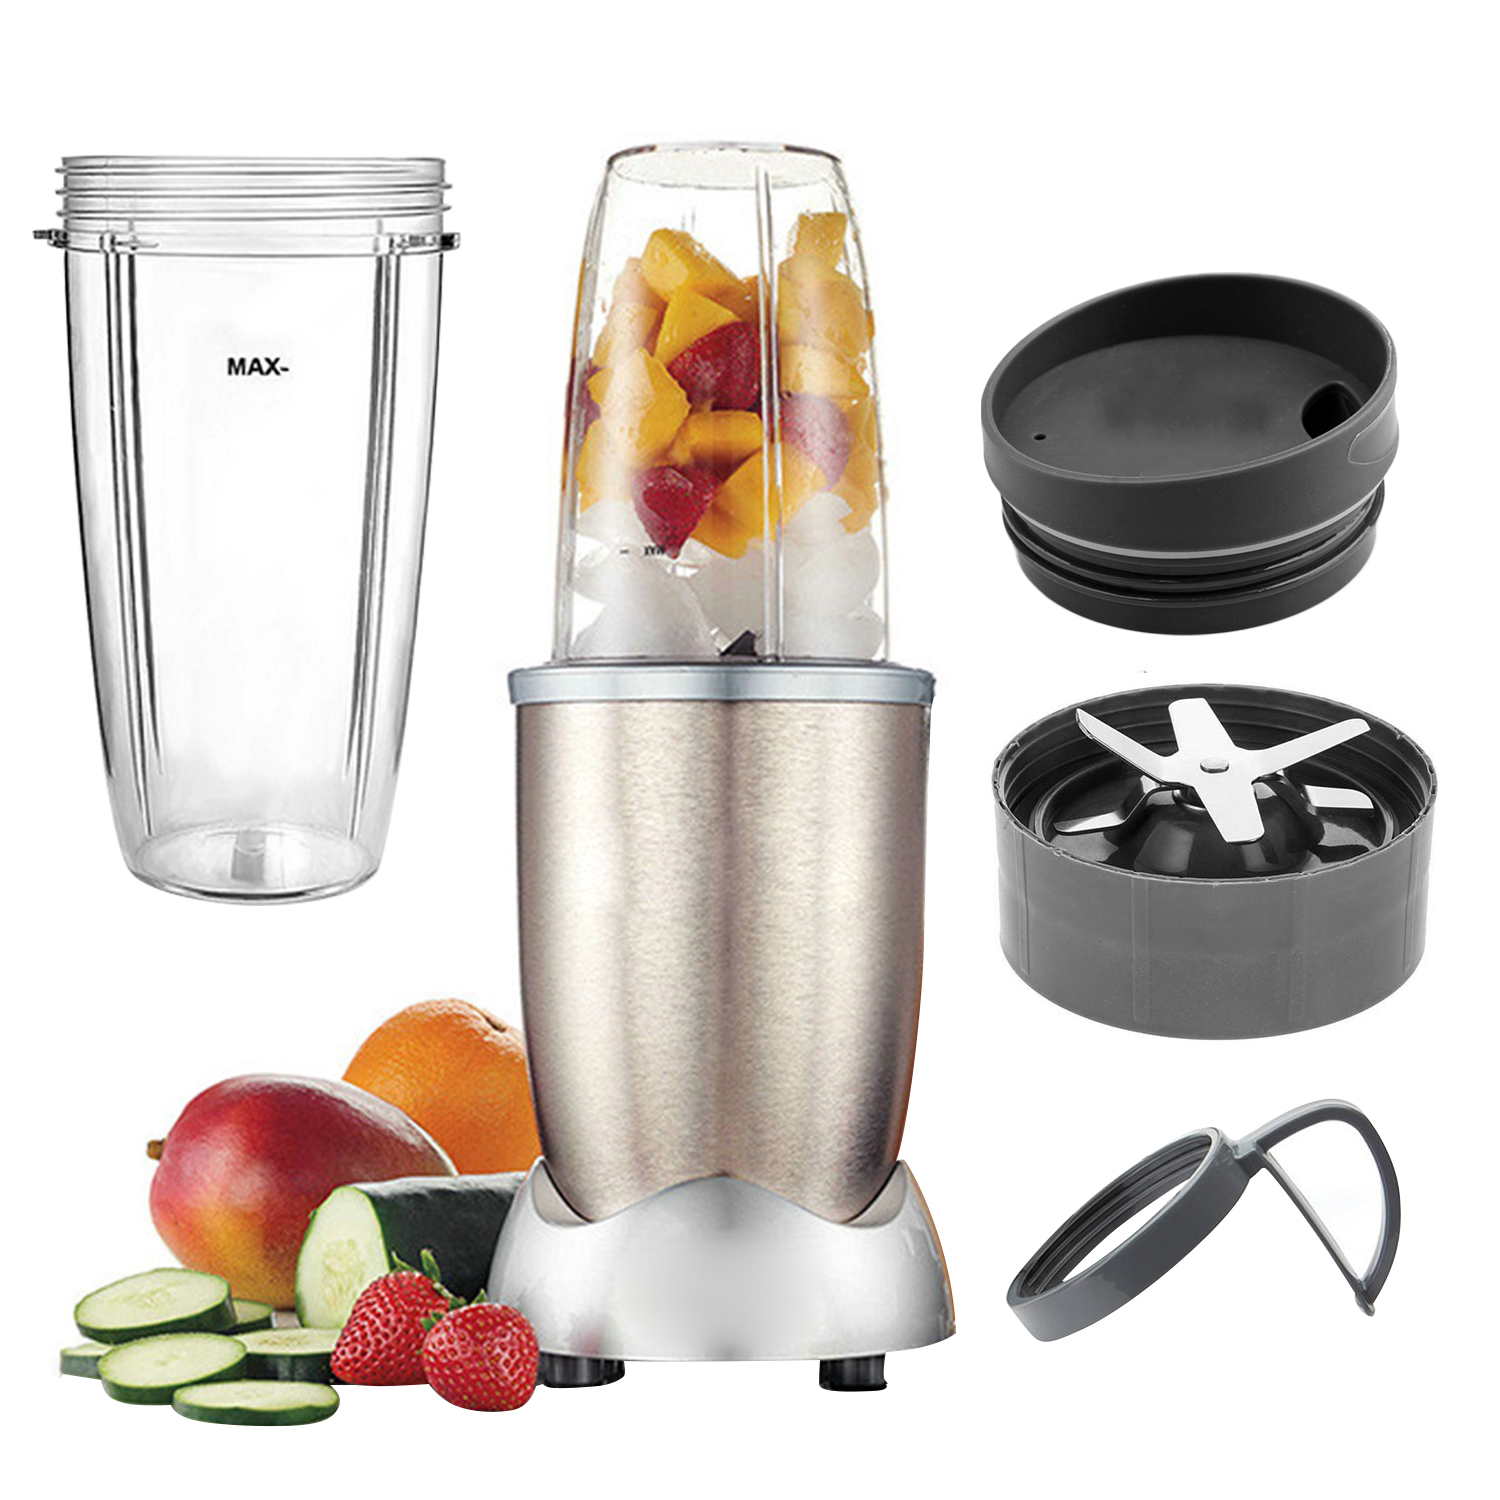 Behogar 4PCS Blender Replacement Parts Accessories Kit With 32OZ Cup Lids Handle Cross Blade For NUTRIBULLET 900W